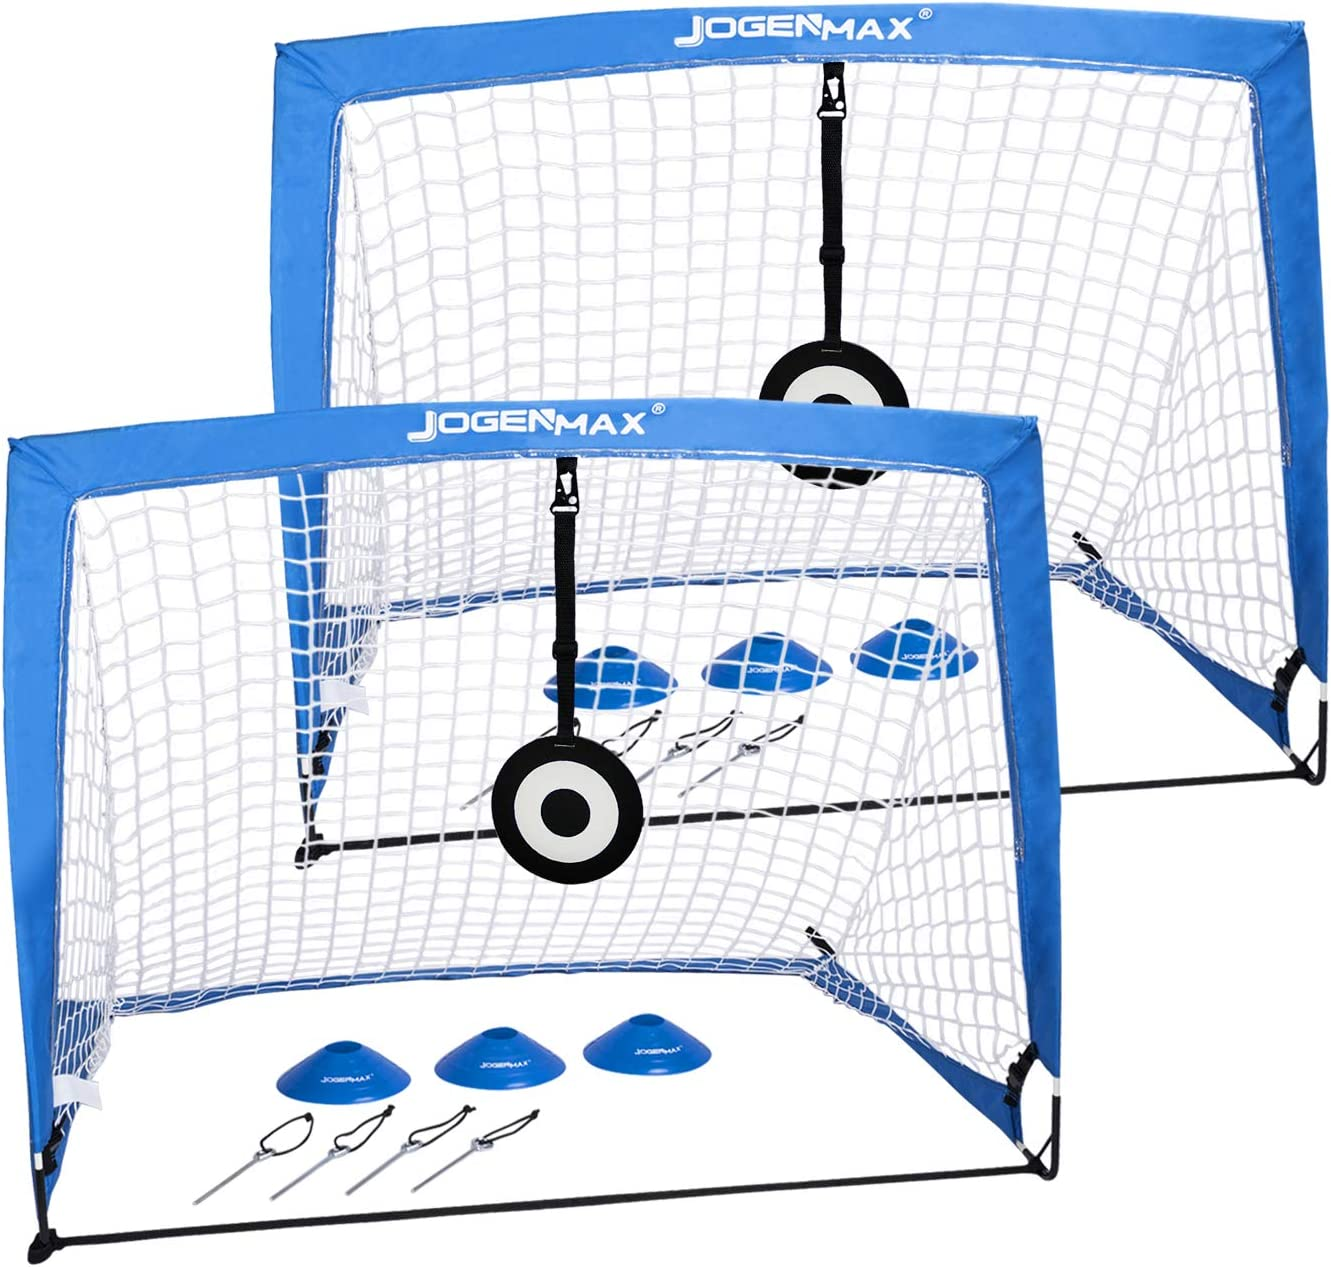 JOGENMAX Portable Soccer Goal Pop Target Aim Large discharge sale Nets with Up Easy-to-use